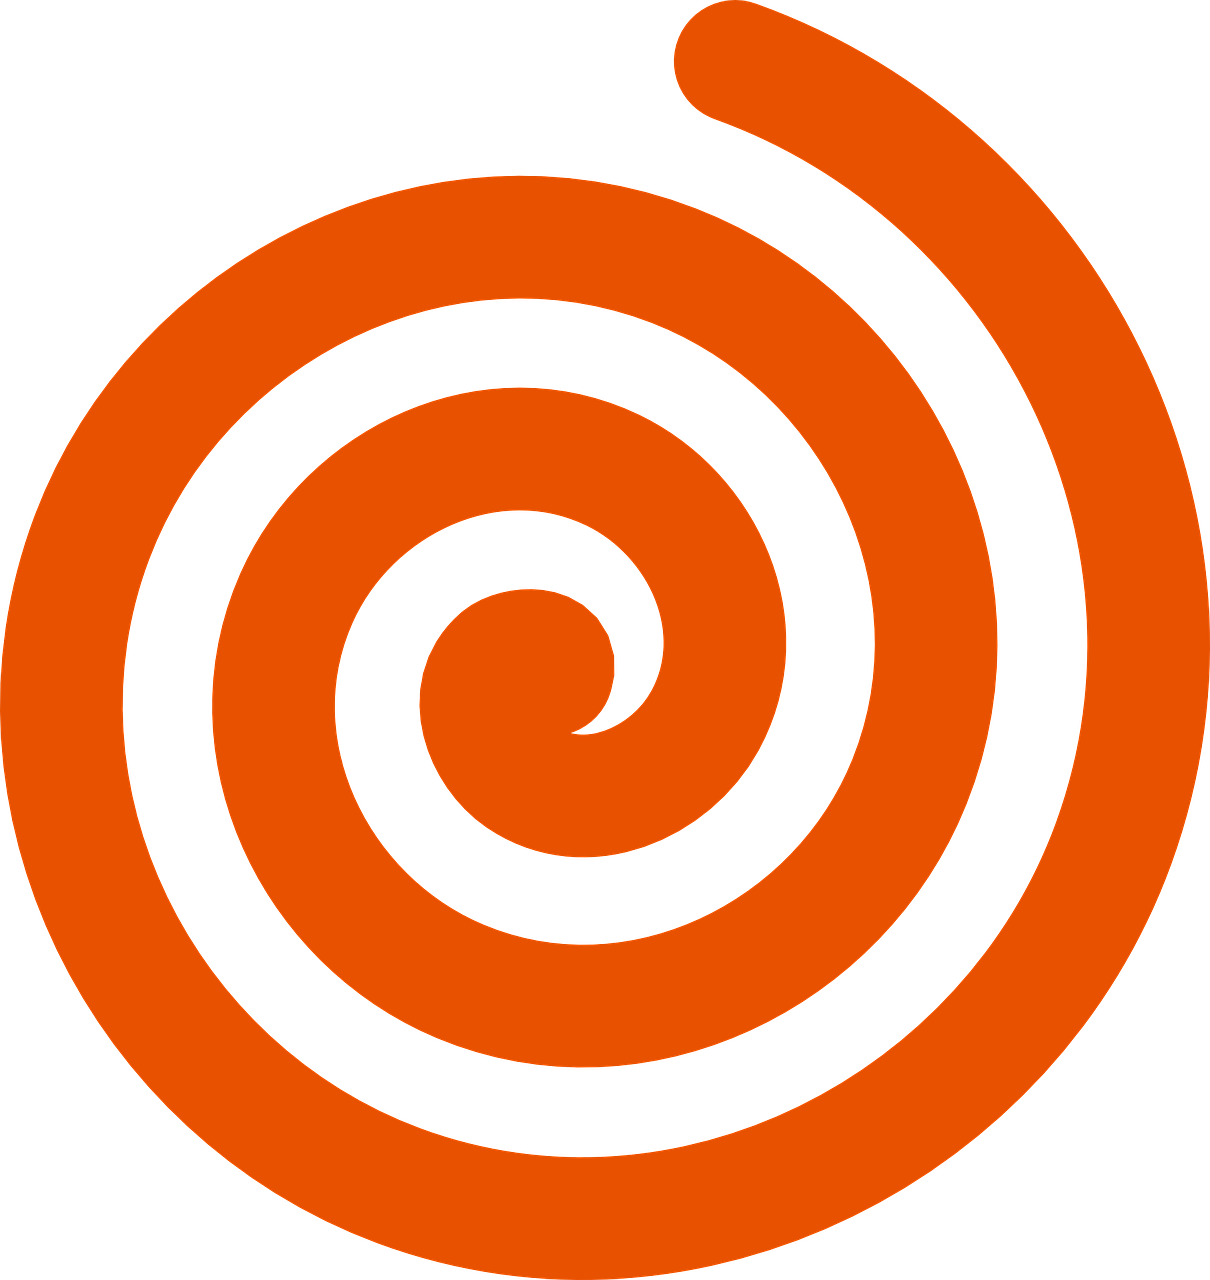 spiral-304435_1280-1.png